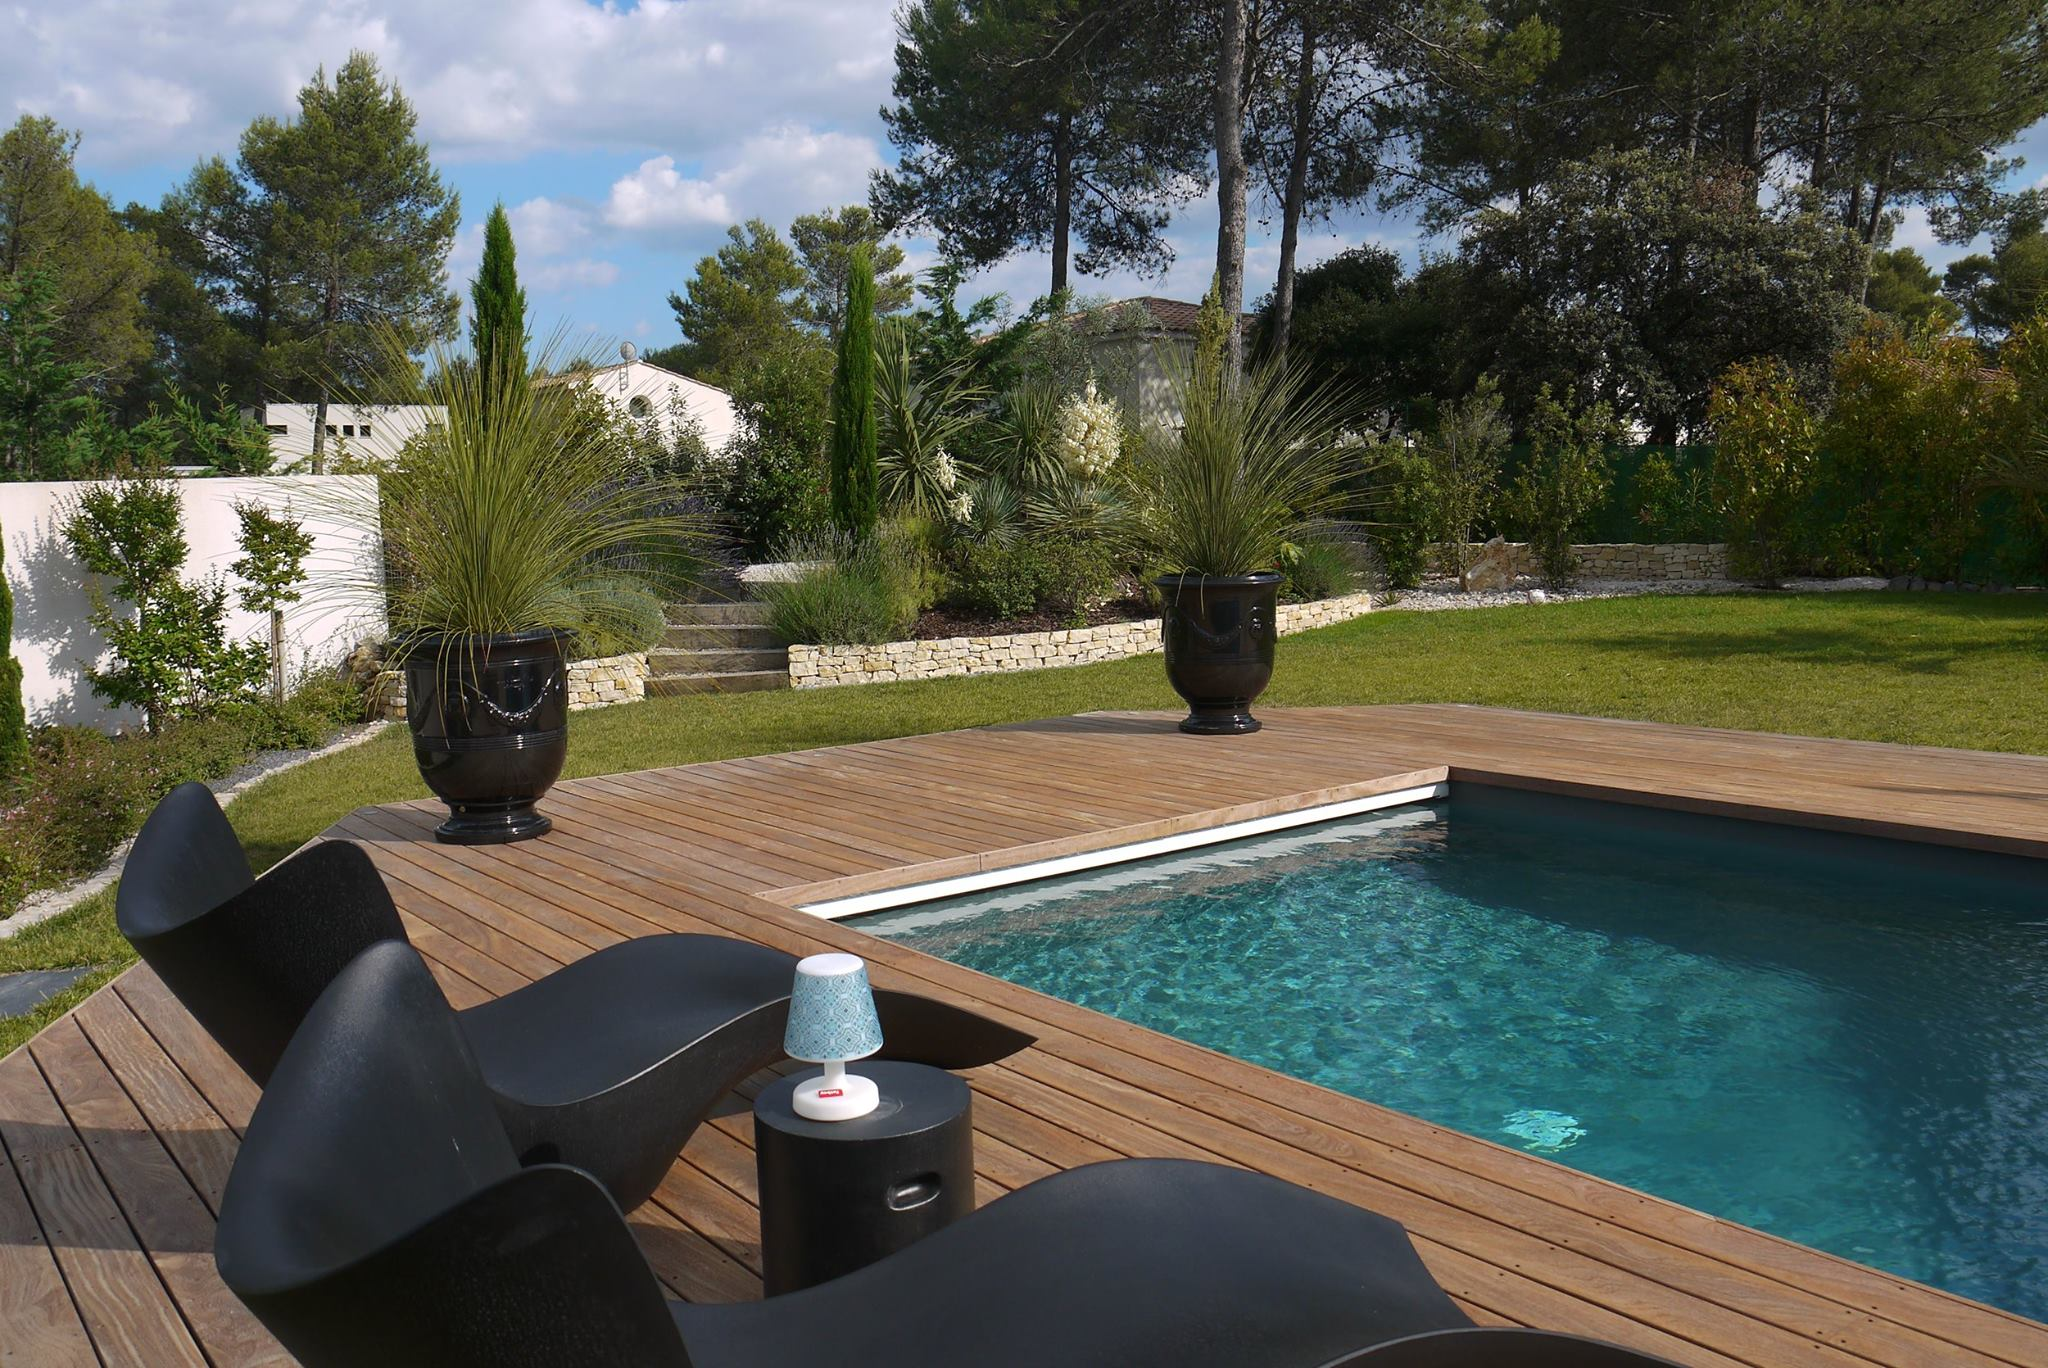 Paysagiste montpellier amenagement jardin decoration jardin for Amenagement jardin